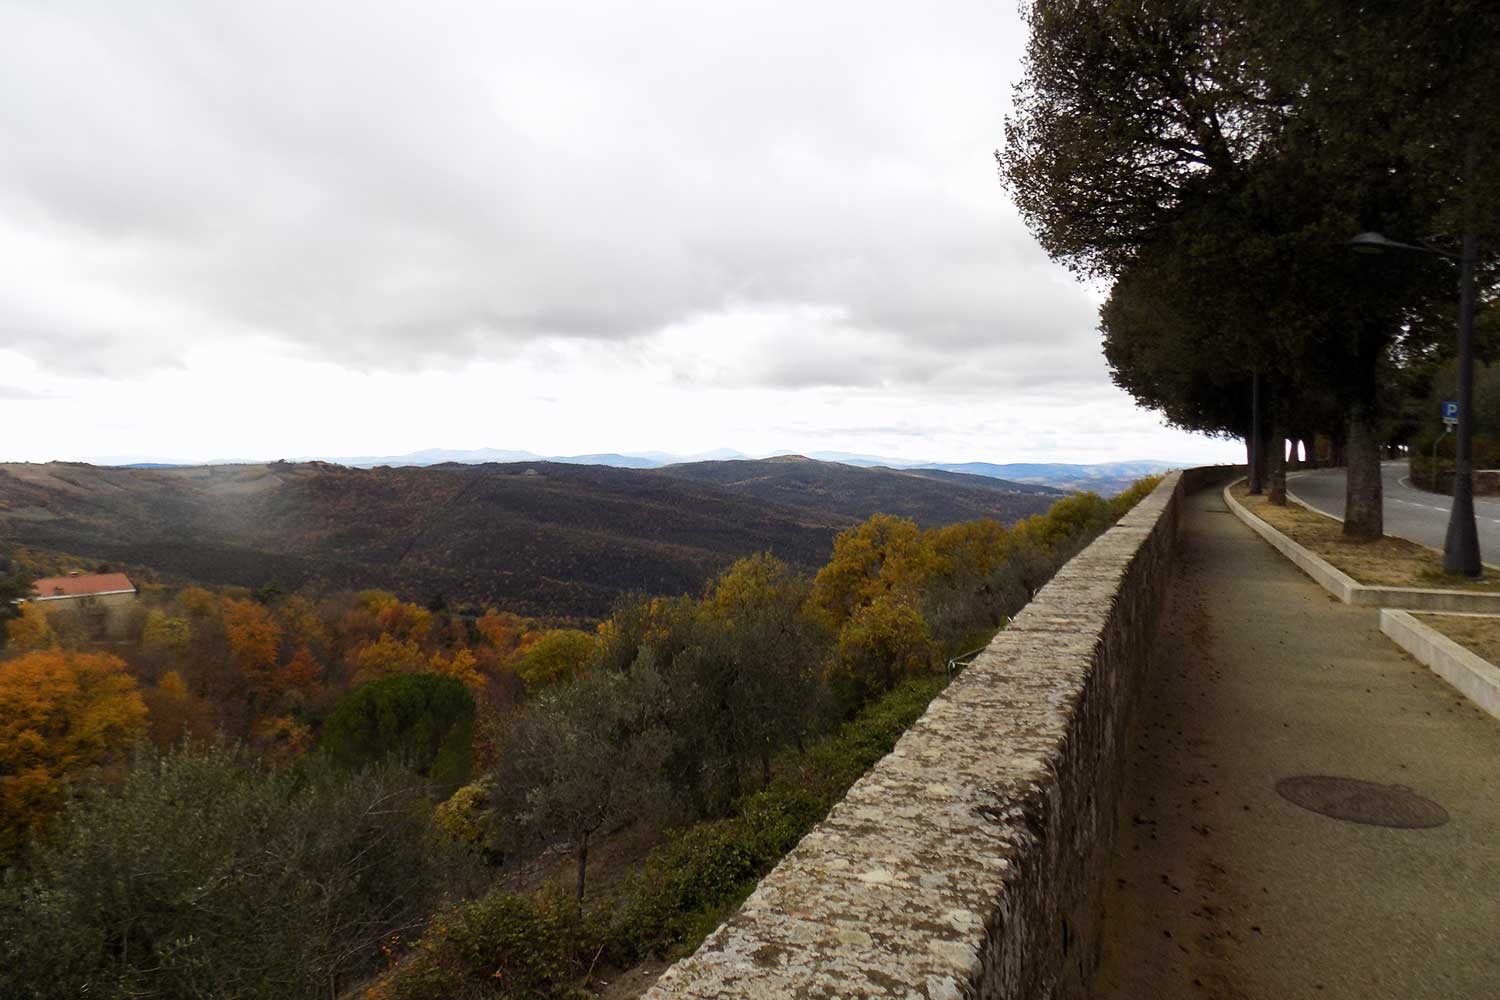 Montalcino val d'orcia